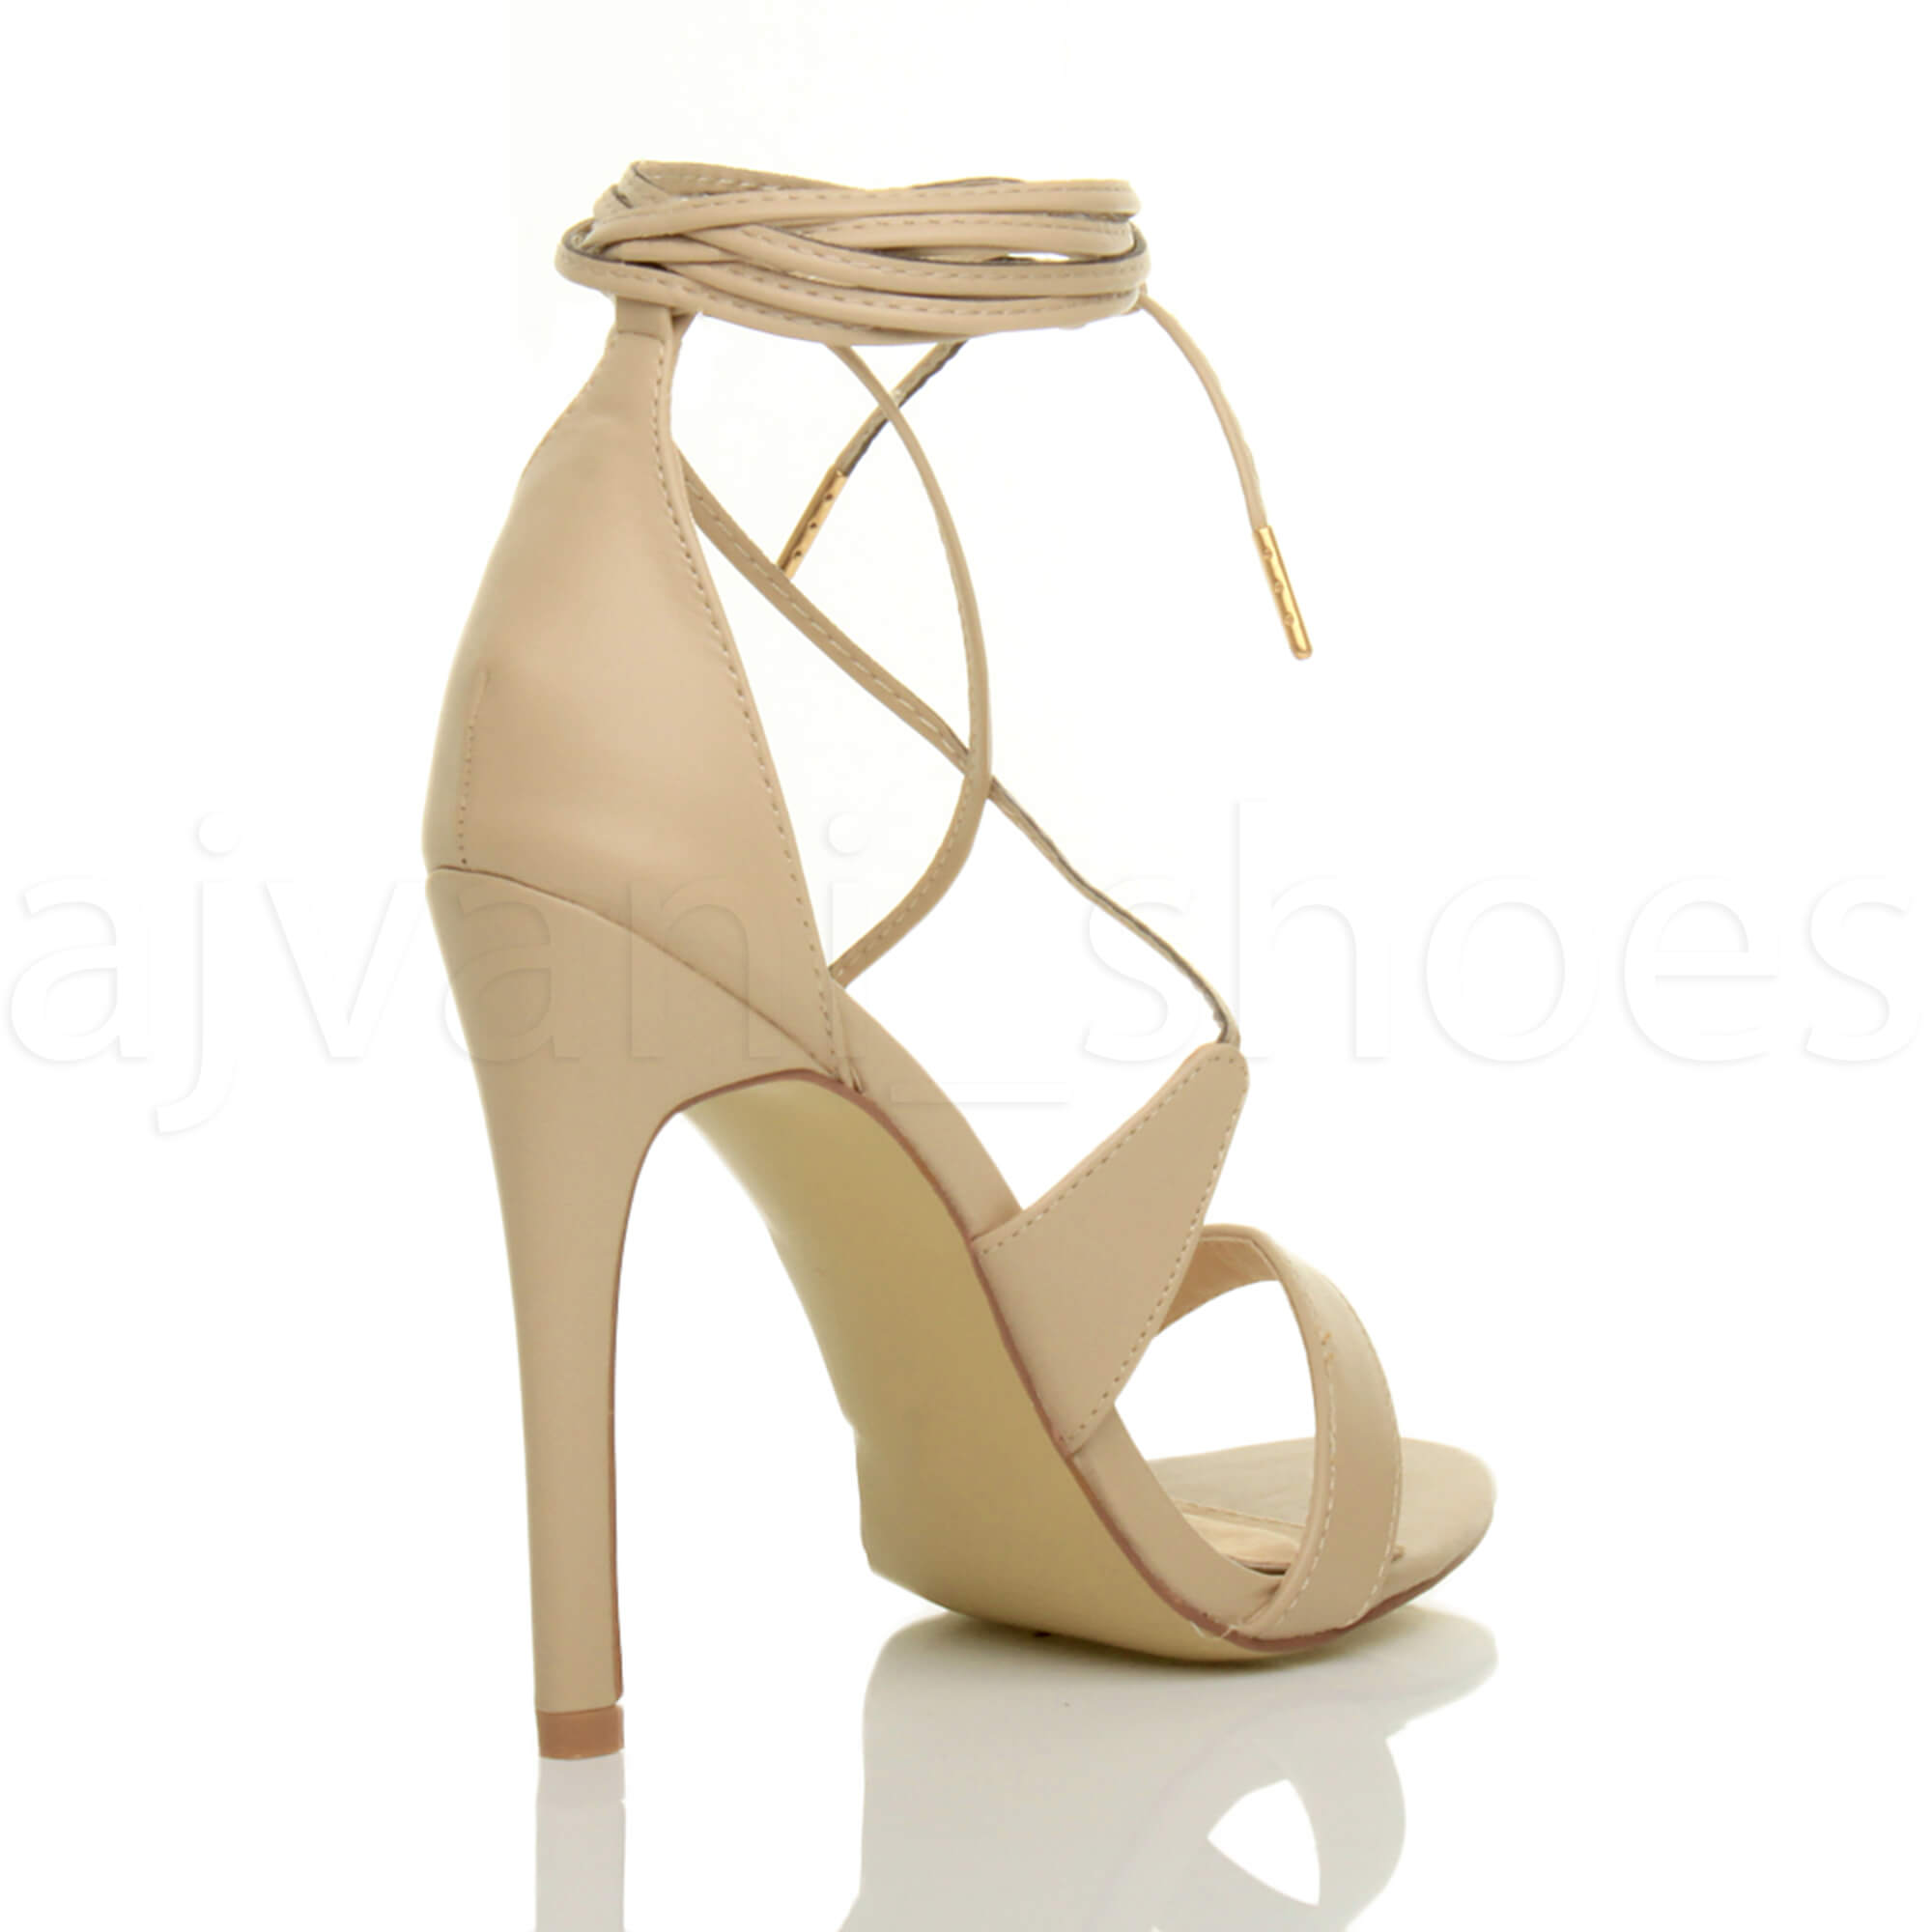 WOMENS-LADIES-HIGH-HEEL-BARELY-THERE-STRAPPY-LACE-TIE-UP-SANDALS-SHOES-SIZE thumbnail 35